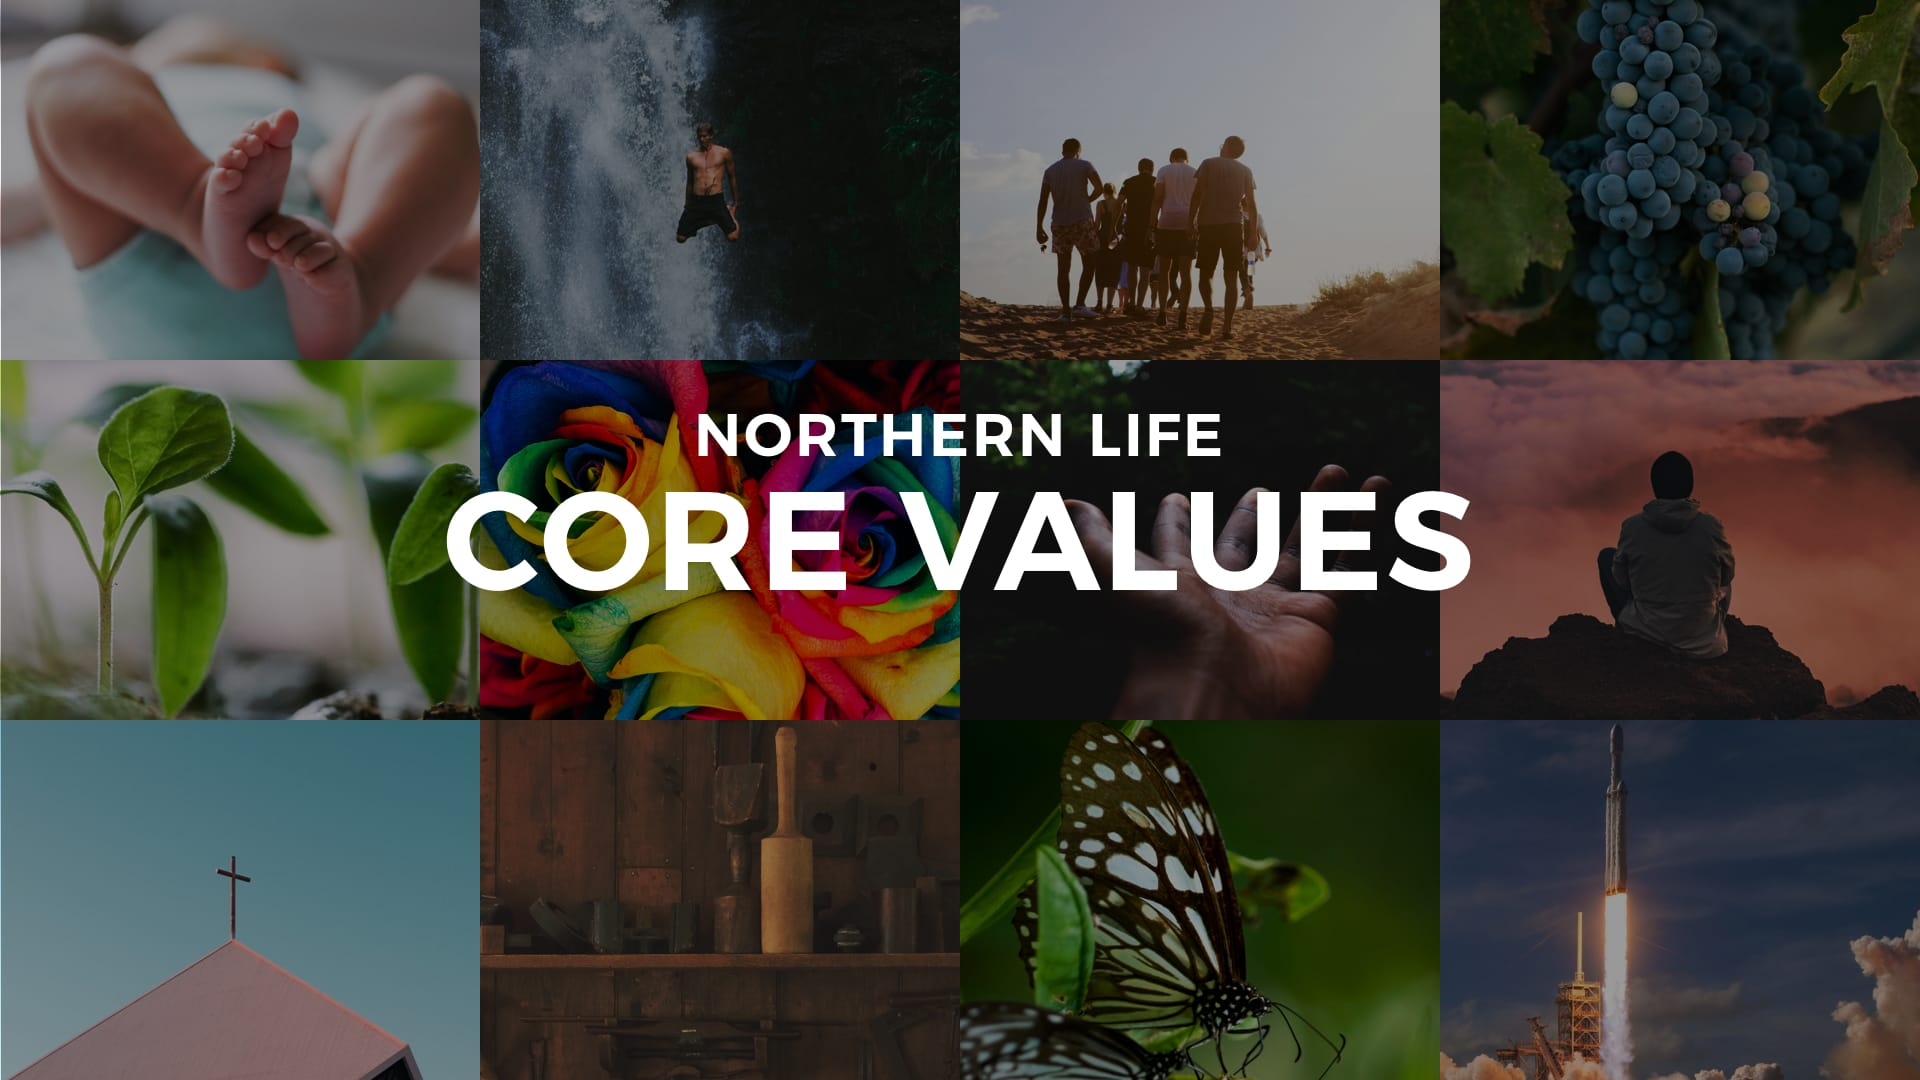 Northern Life Core Values cover